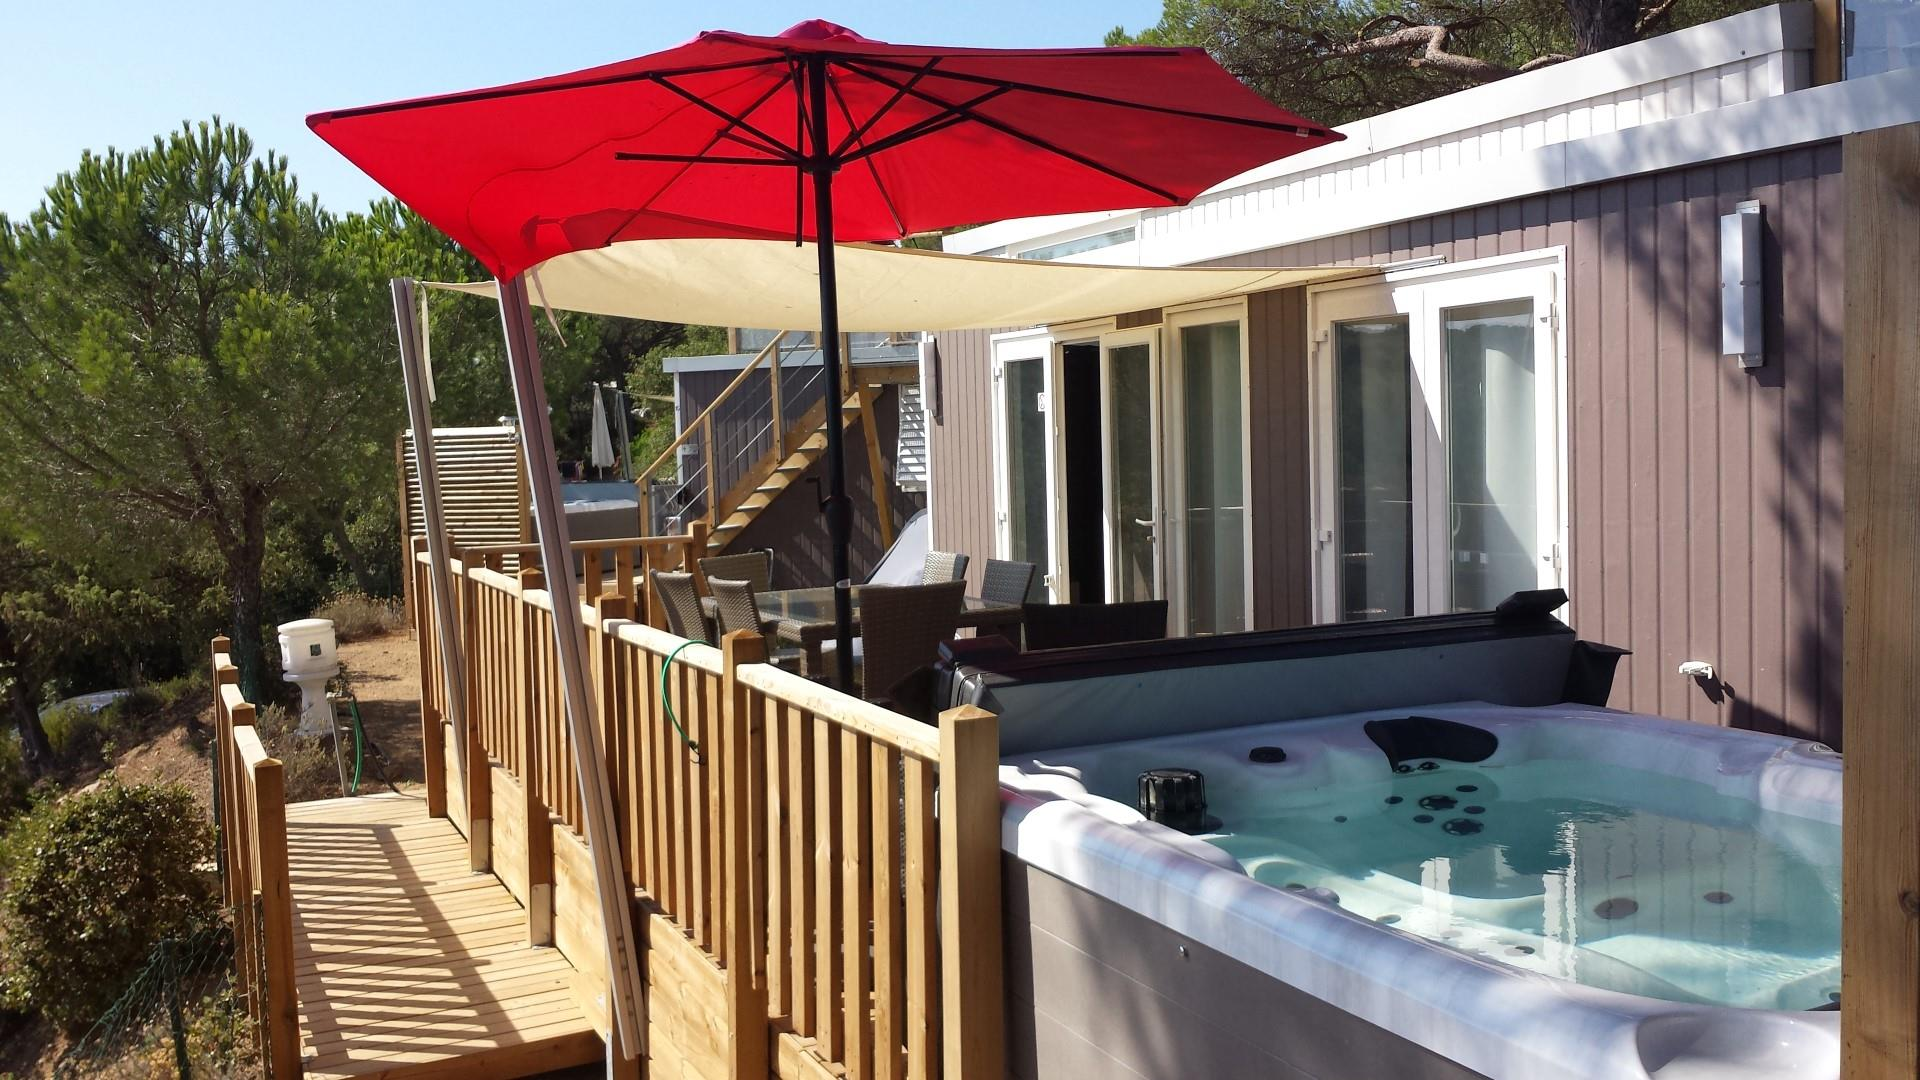 Location - Mobilhome Vip Cap Deseo 34 M² Avec Jacuzzi - Camping Les Lauriers Roses